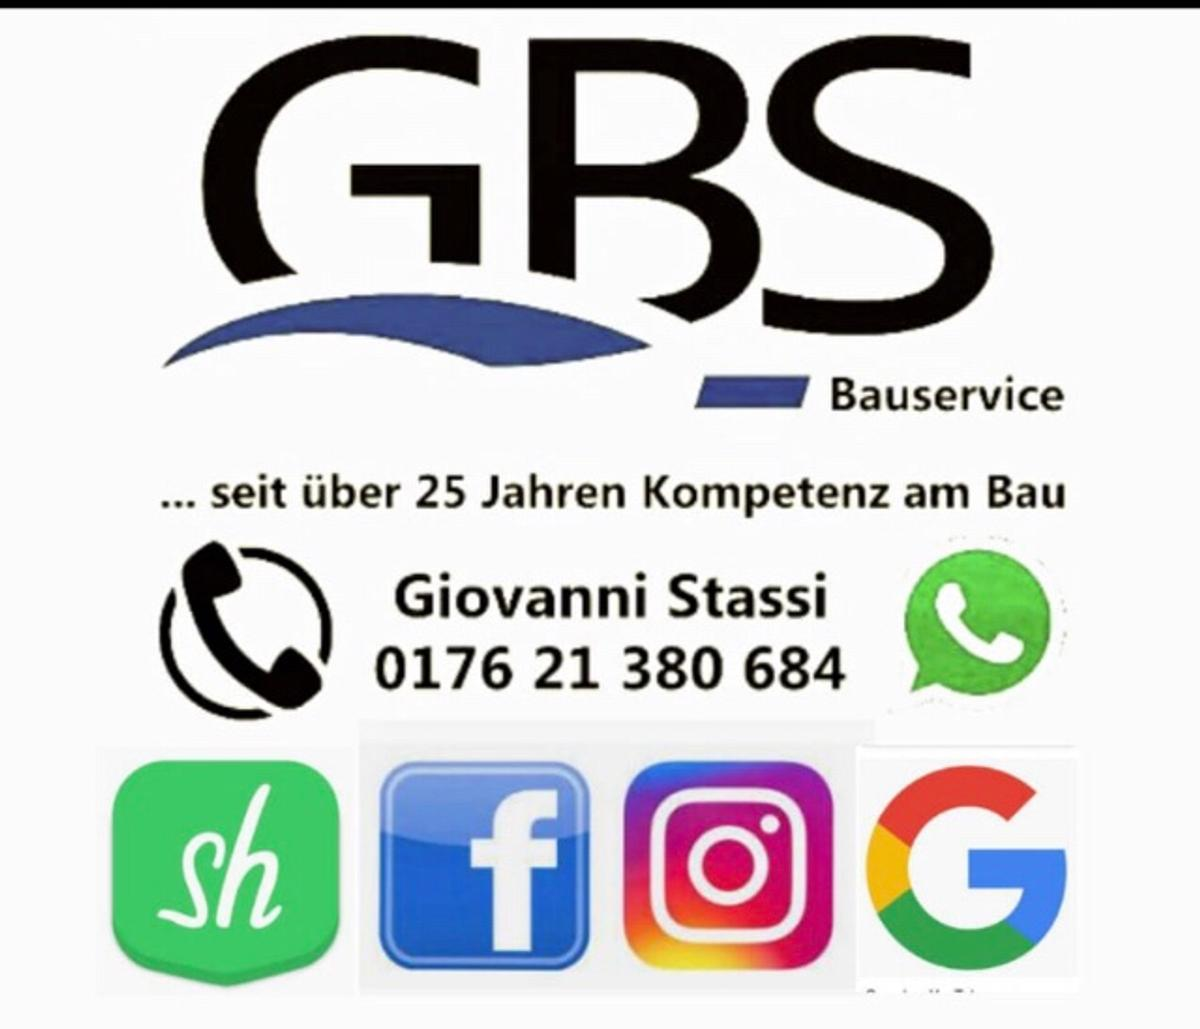 54747df3309f75 Gbs bauservice